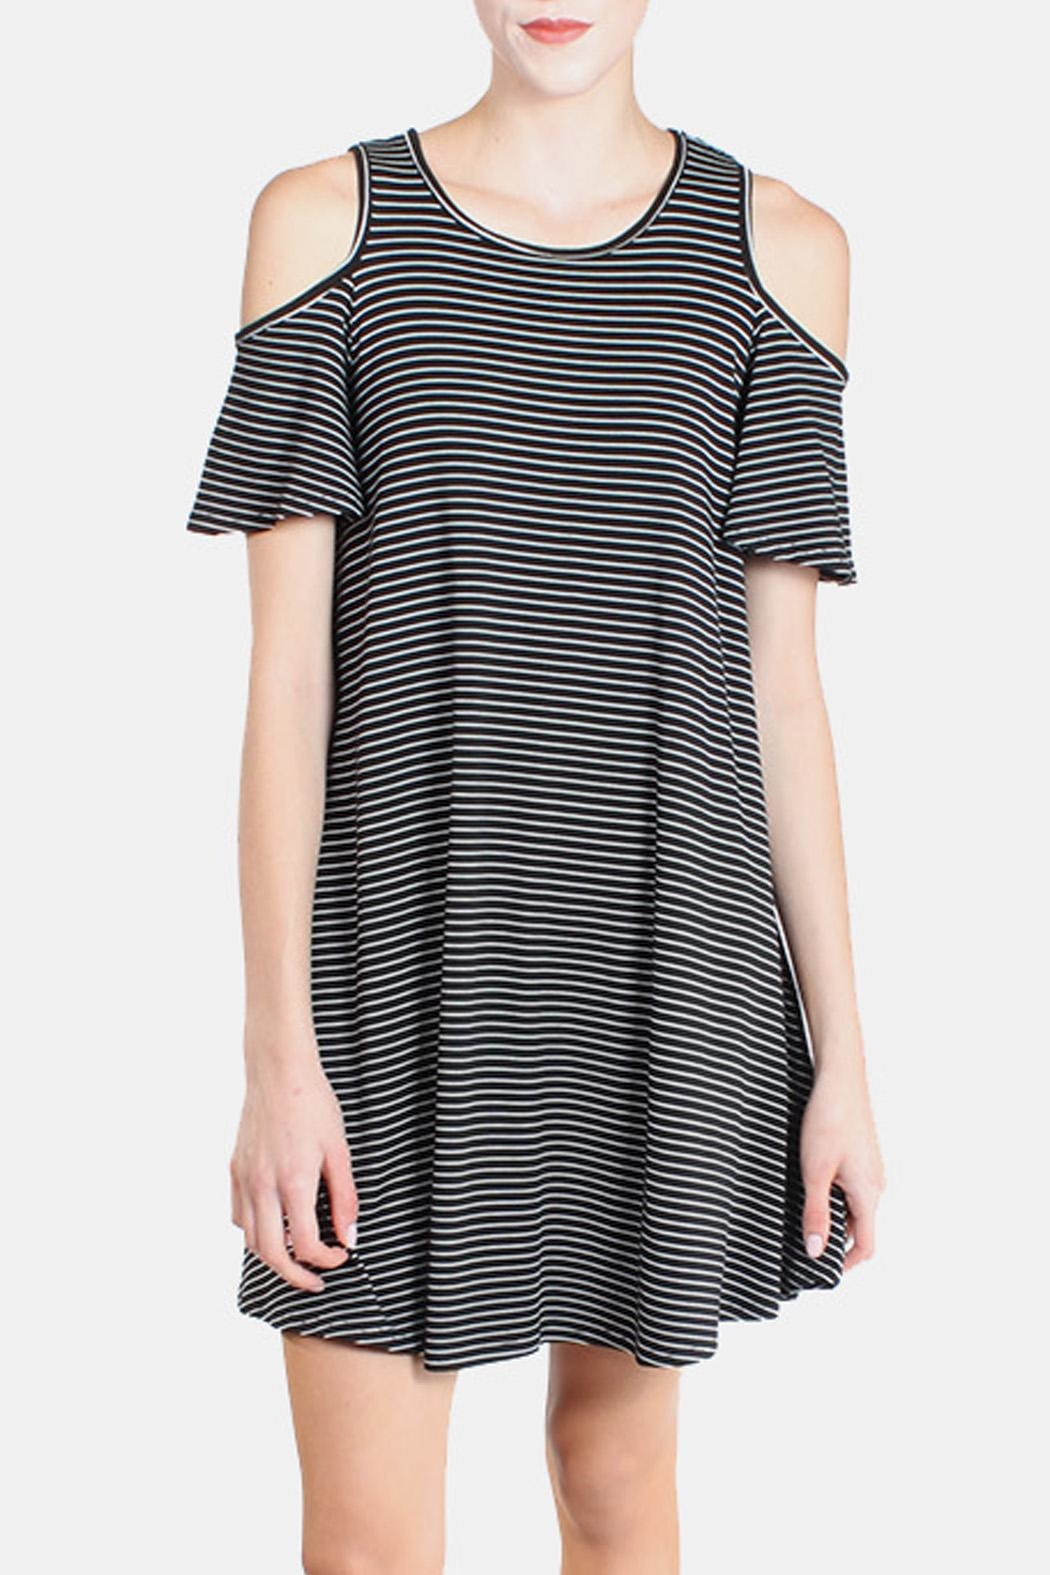 Chris & Carol Cold Shoulder Striped Dress - Front Full Image